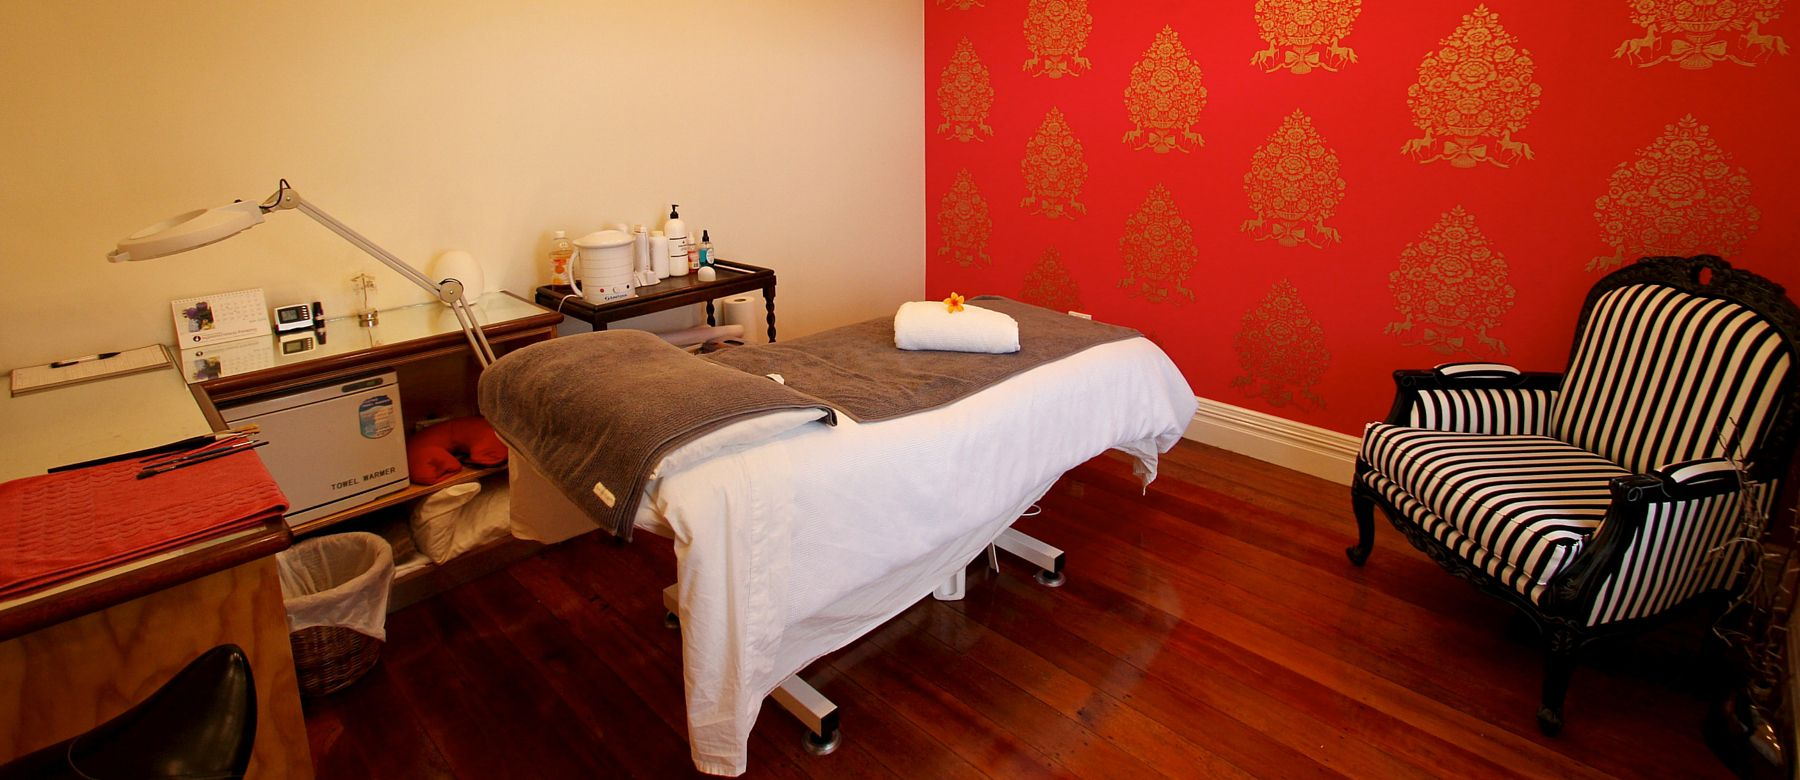 Skin and Beauty Treatments at Elliott Cottage Skin & Beauty Therapy Nelson